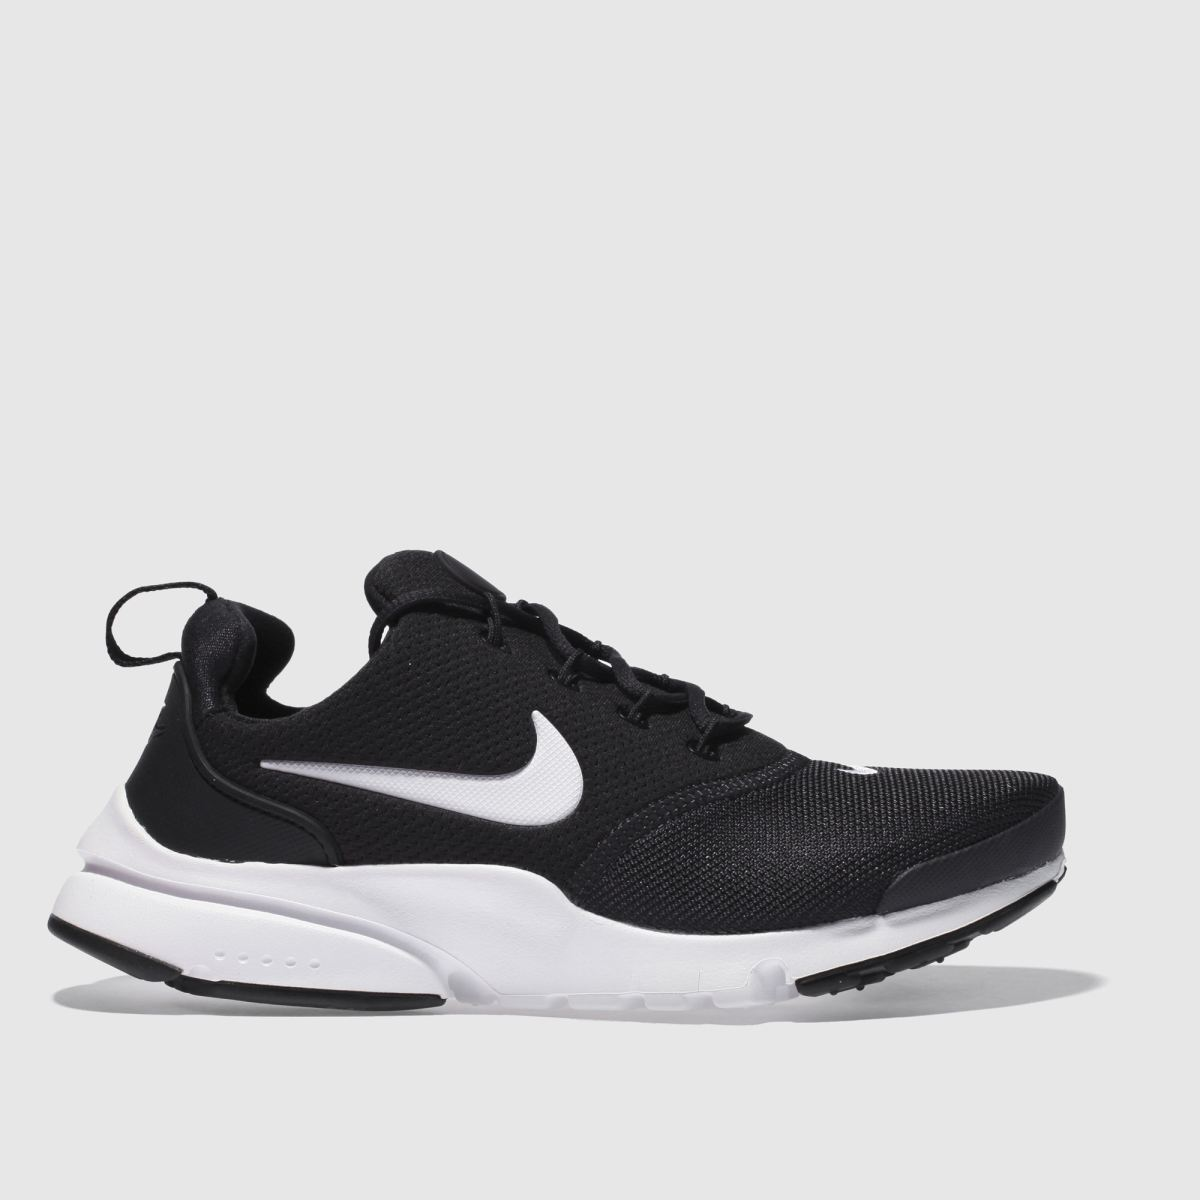 Nike Black & White Presto Fly Trainers Youth